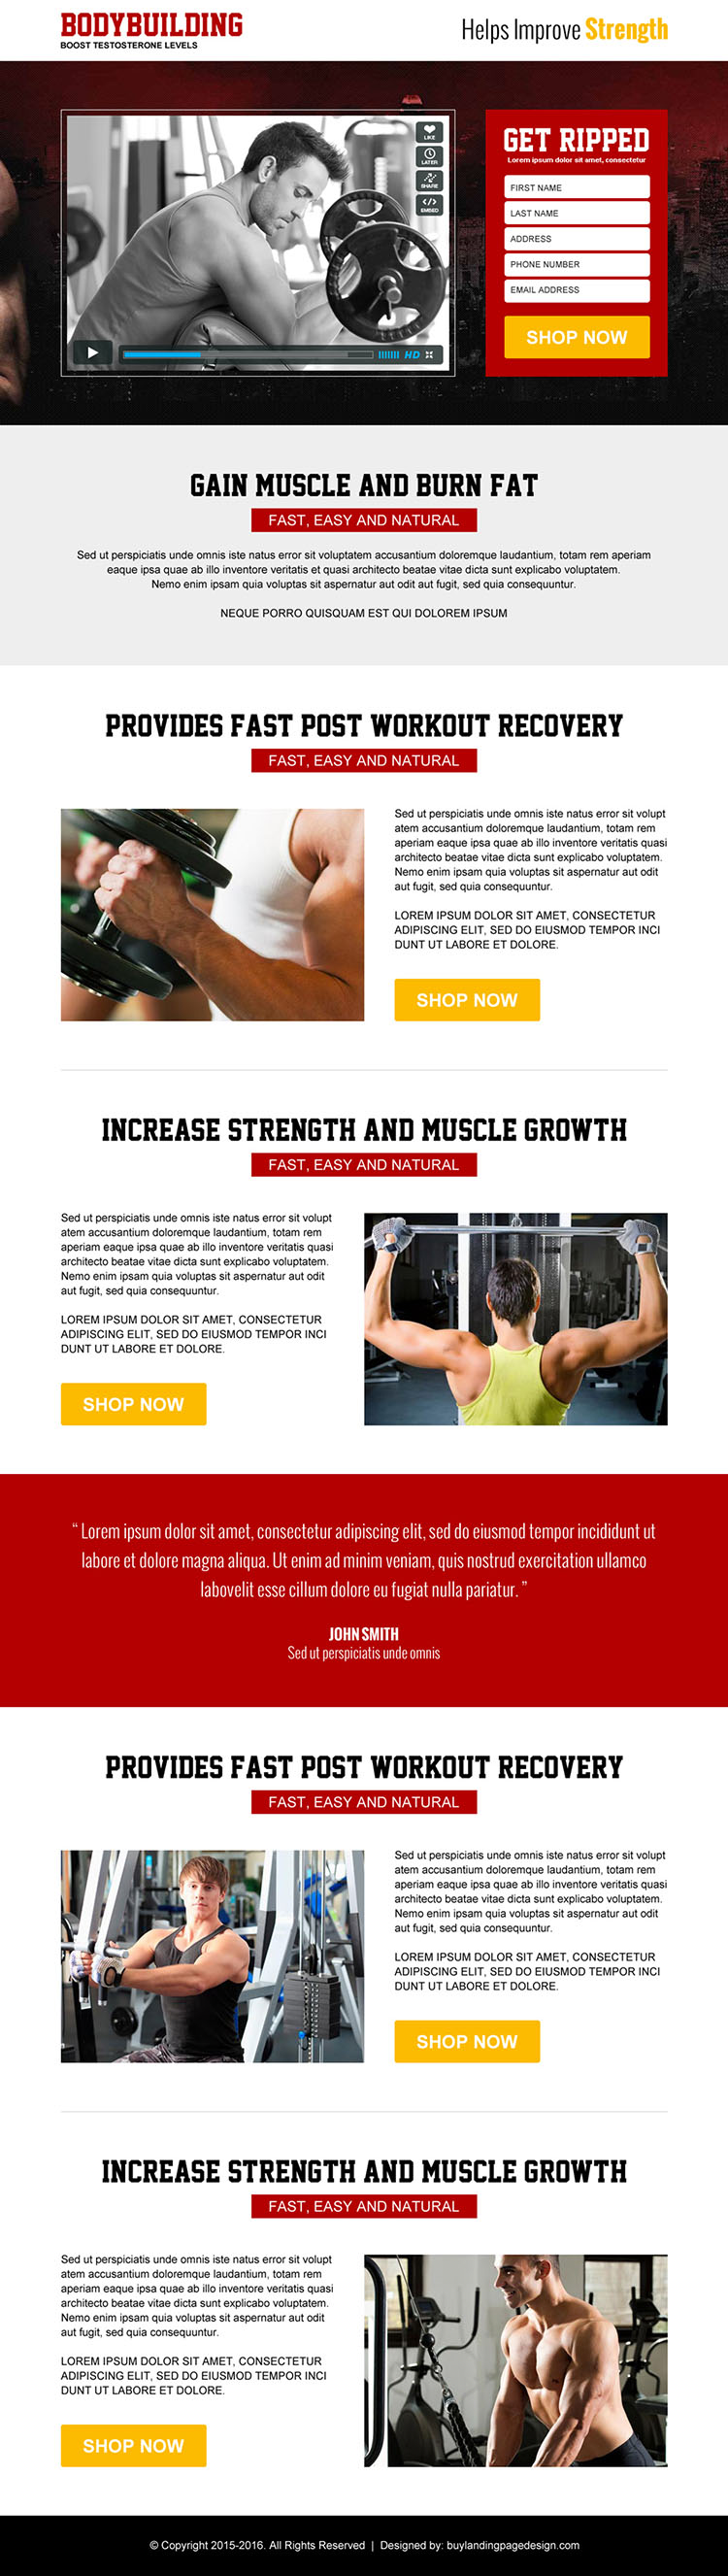 bodybuilding service lead generation video landing page design